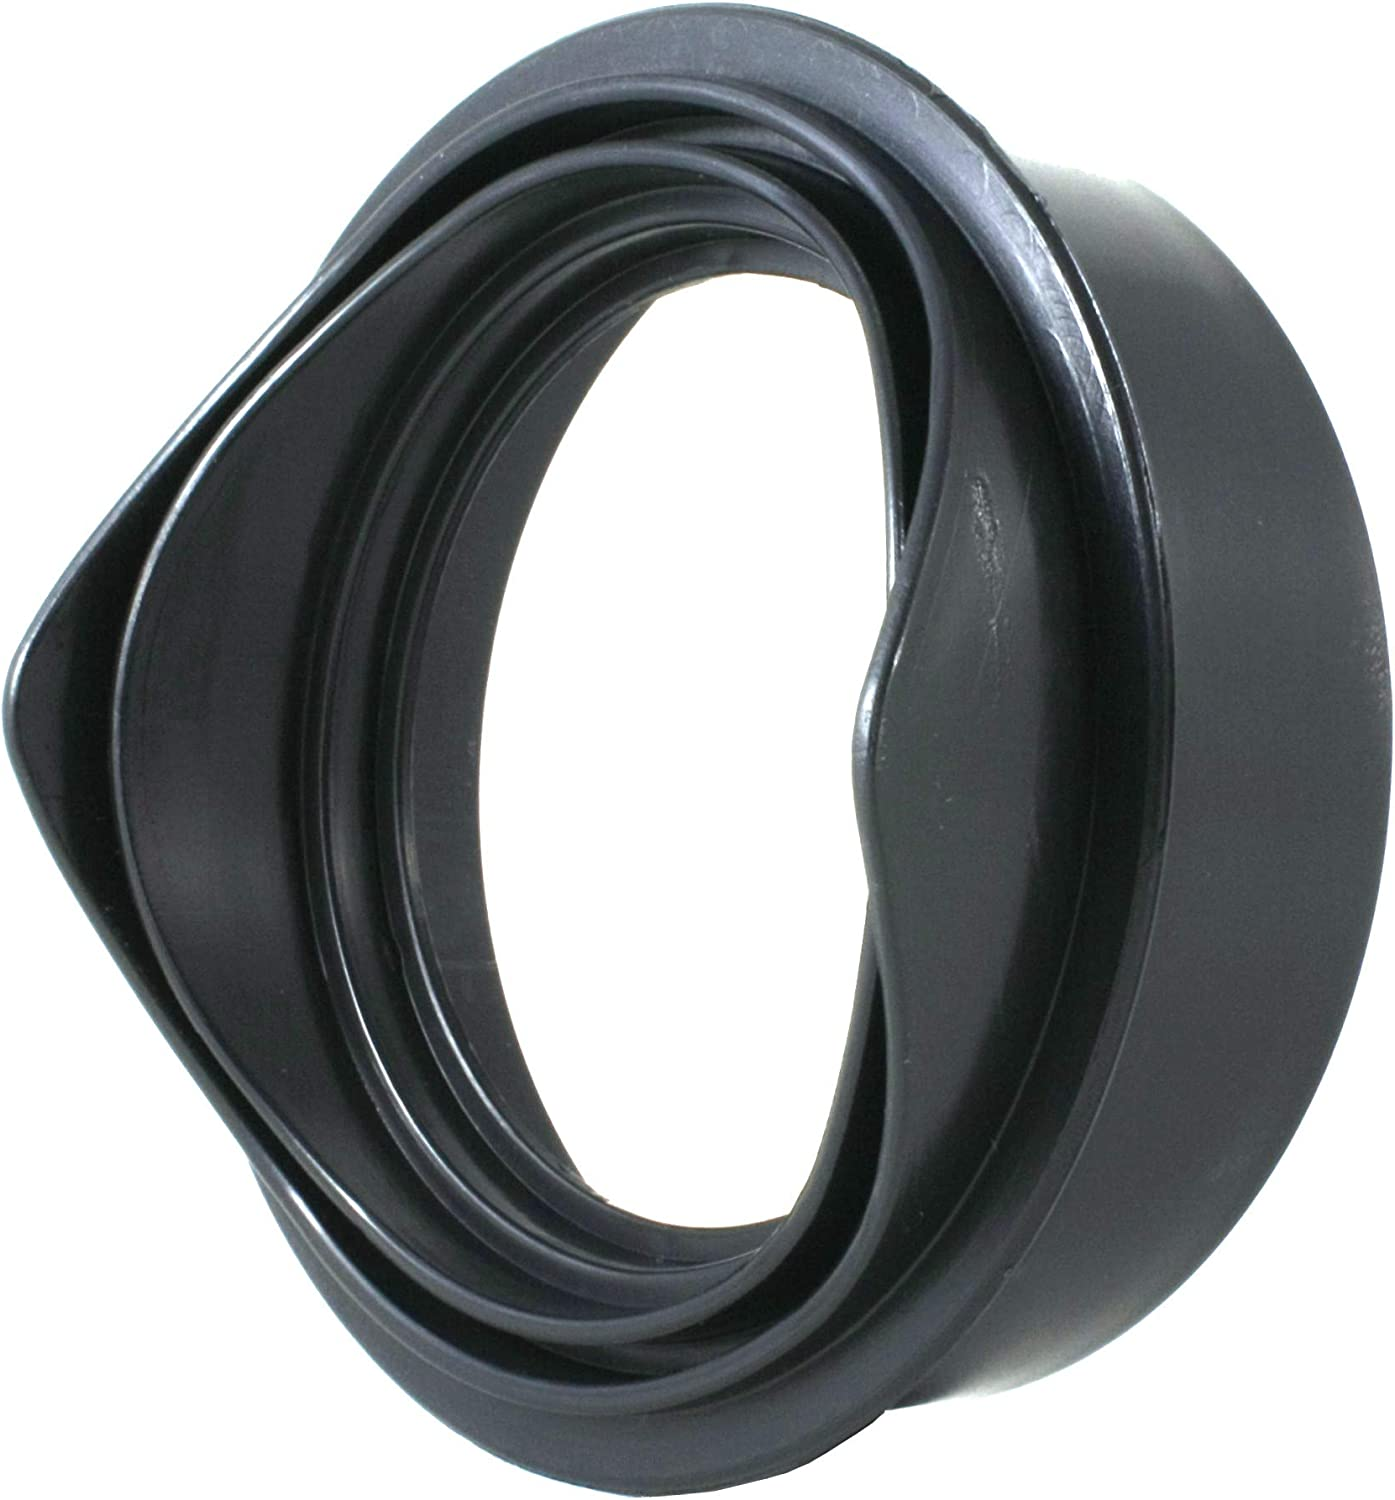 Bottom Outlet Connector for Black Plastic Drain UA-100 Series